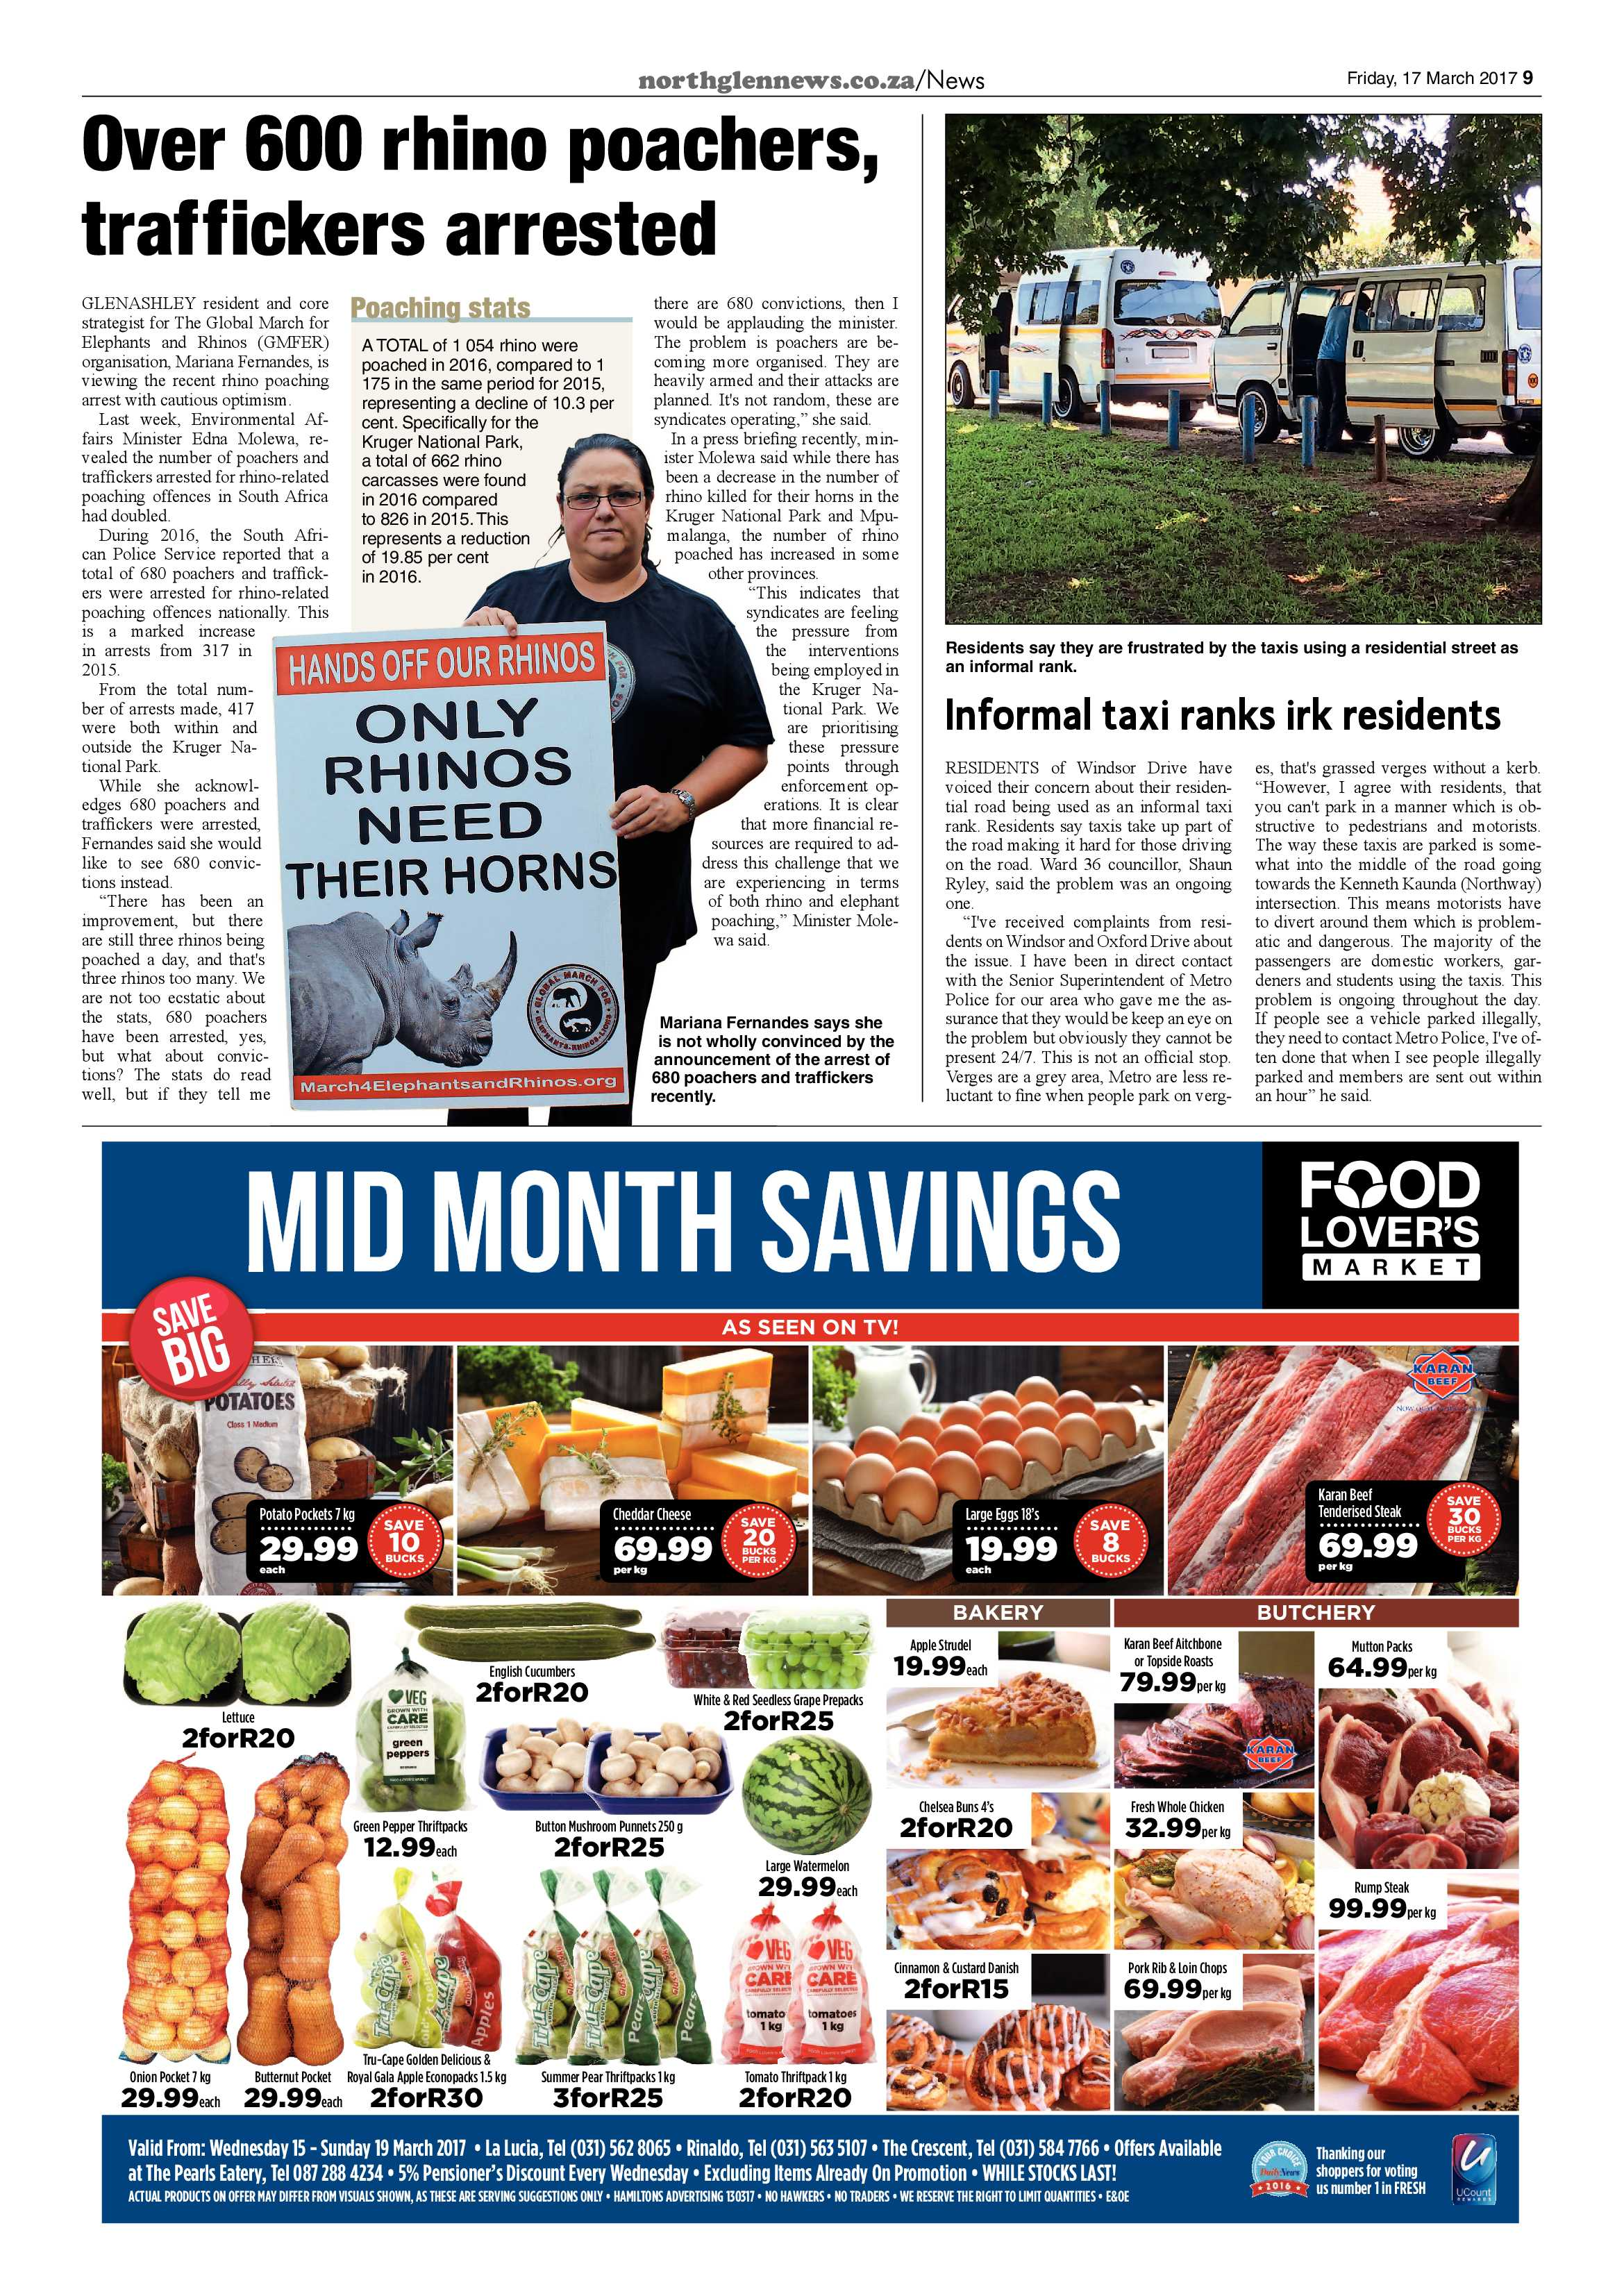 northglen-news-17-march-2017-epapers-page-9